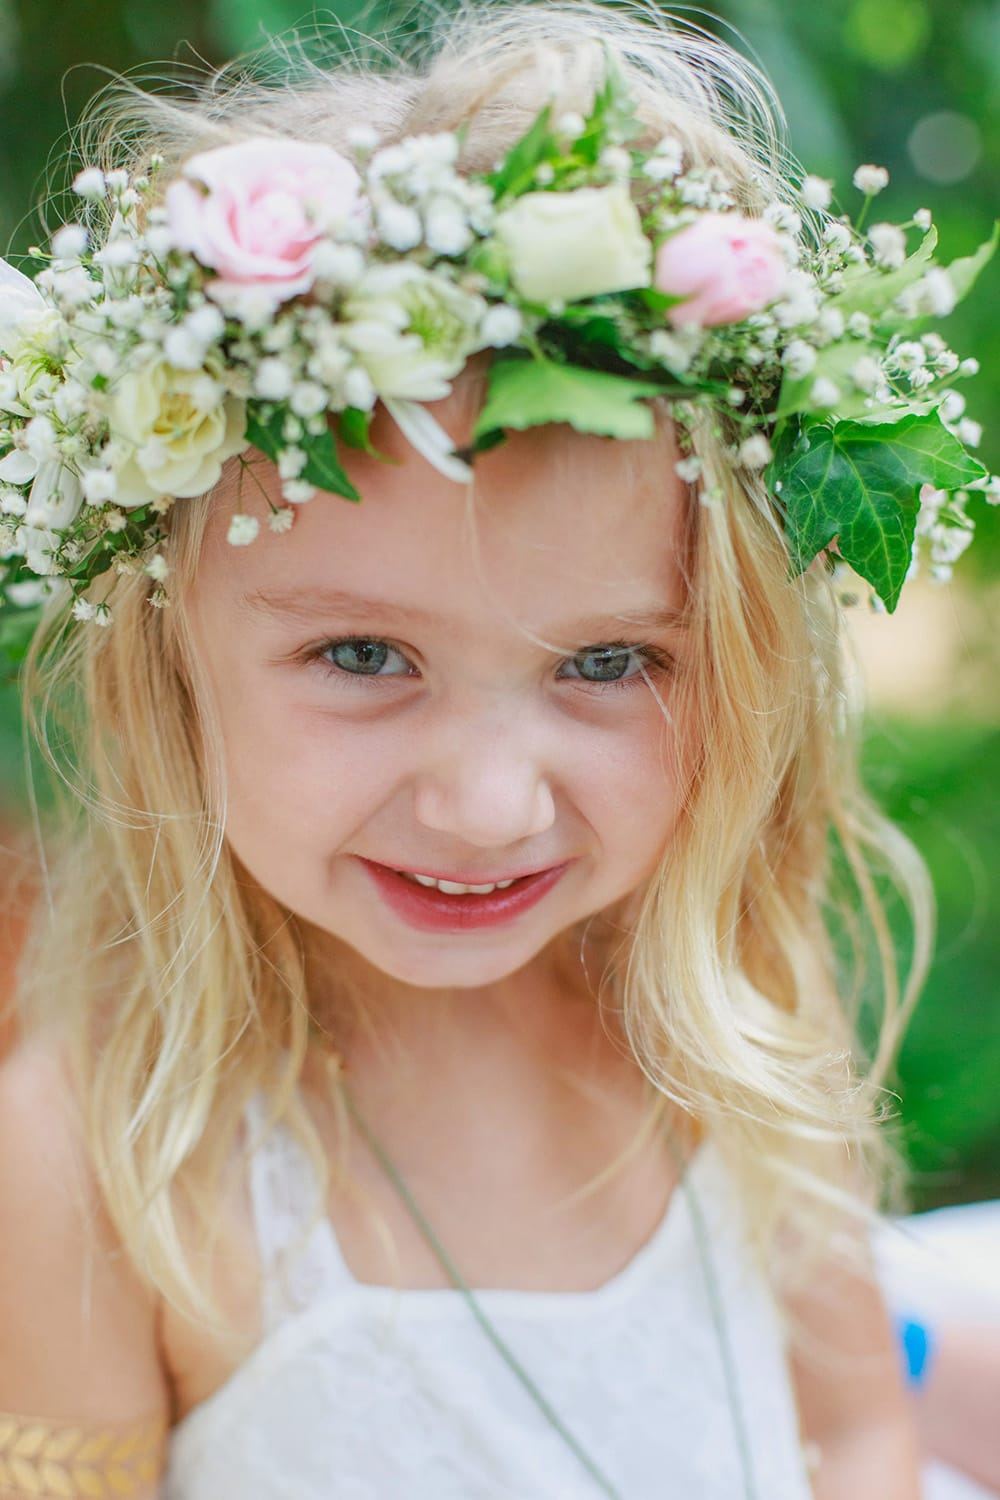 Adorable flower girl with spray rose flower crown for beach wedding ceremony designed by Adventure Weddings' florist